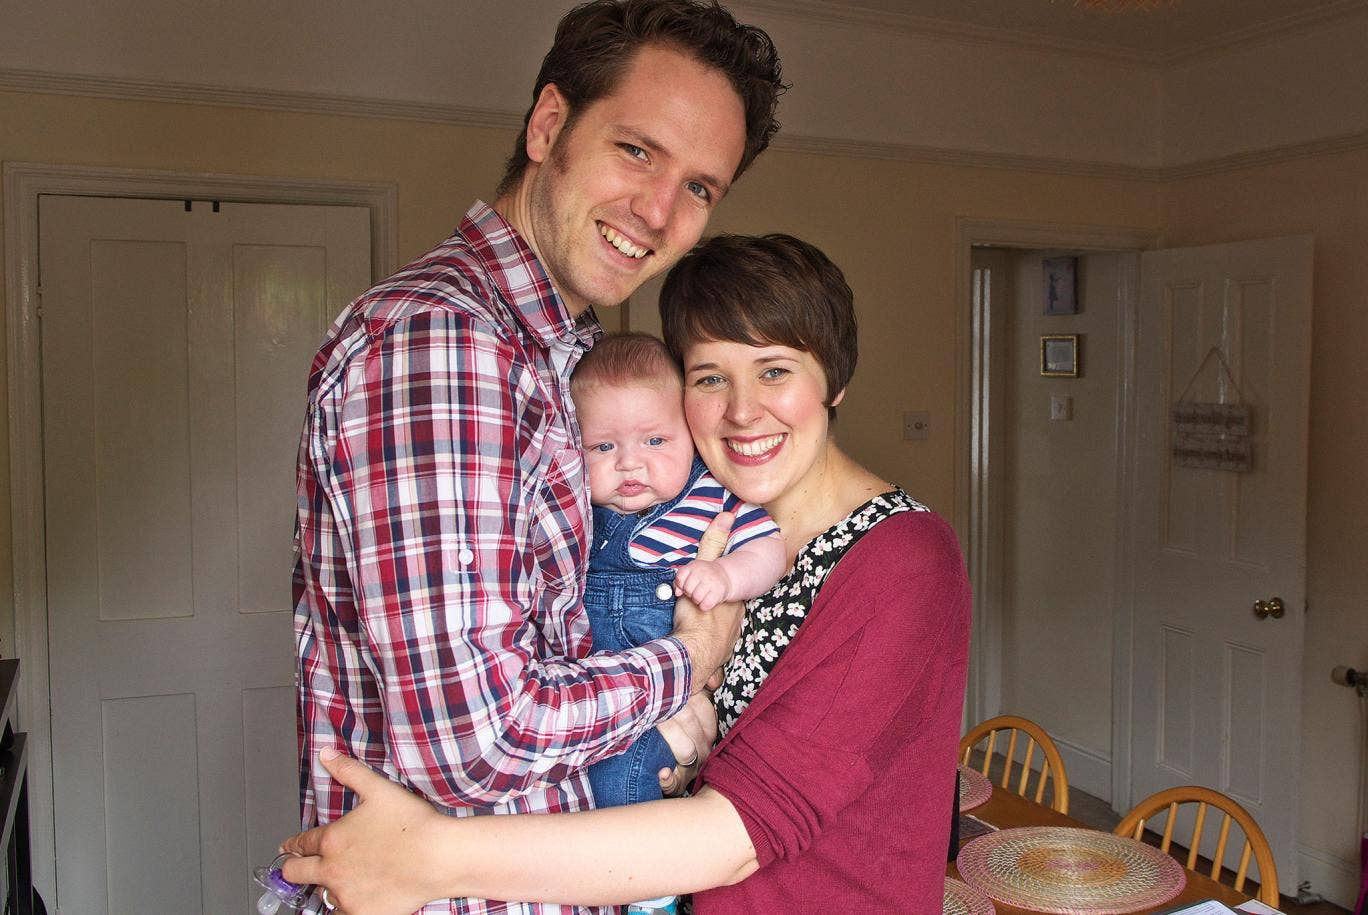 Jessica Pidsley, Matthew Bannister and their son Albert Bannister at their home in Norwich. Jessica Pidsley suffered severe postnatal psychosis shortly after the birth of her son and had to be hospitalised